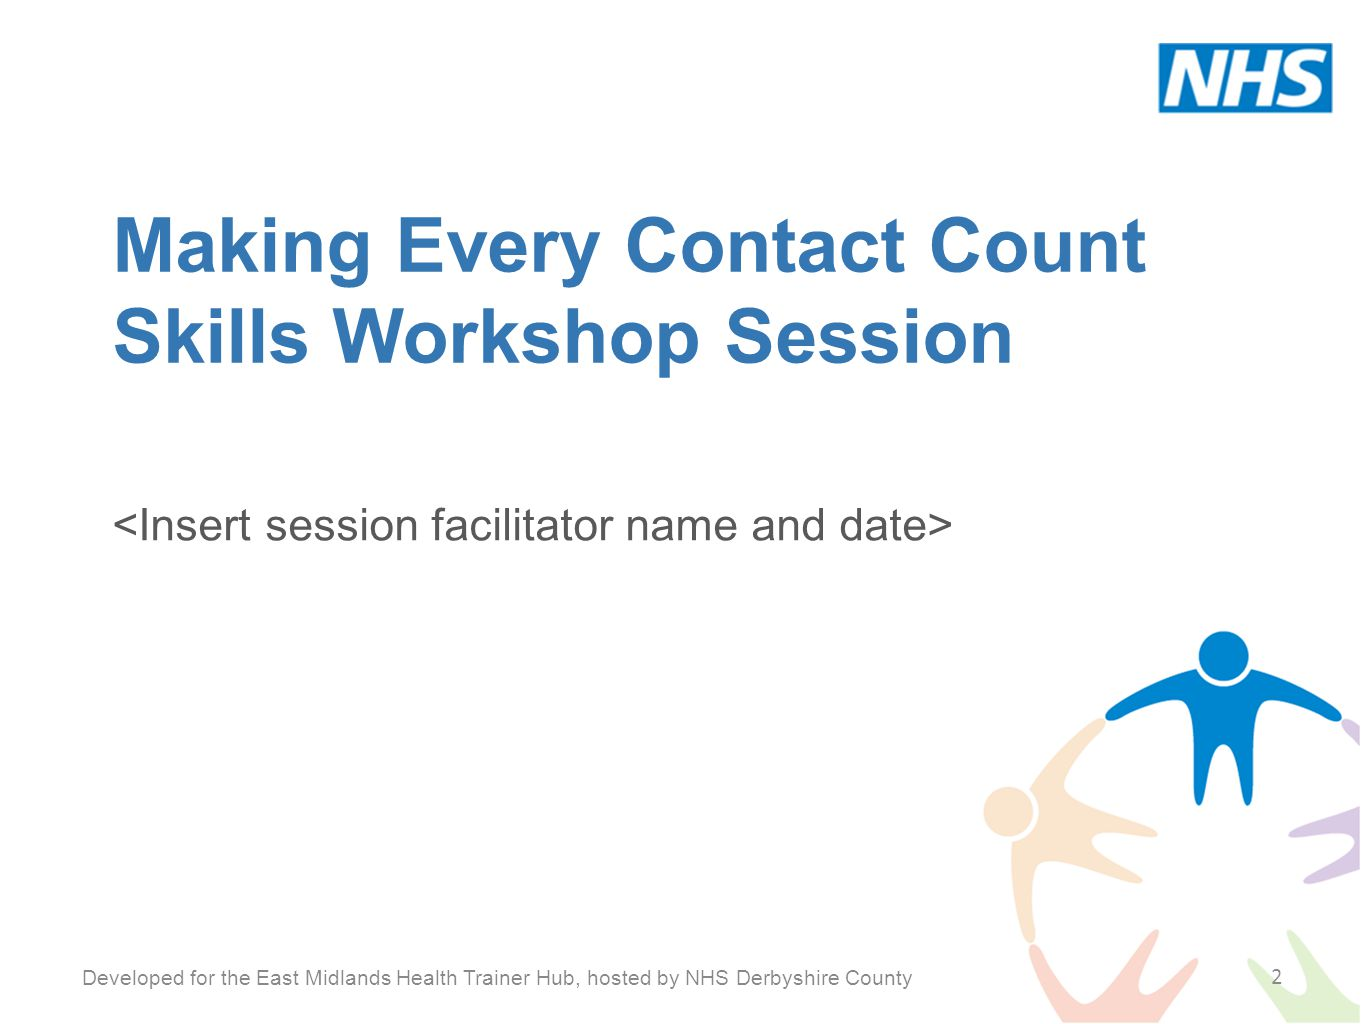 Making Every Contact Count Skills Workshop Session 2 Developed for the East Midlands Health Trainer Hub, hosted by NHS Derbyshire County